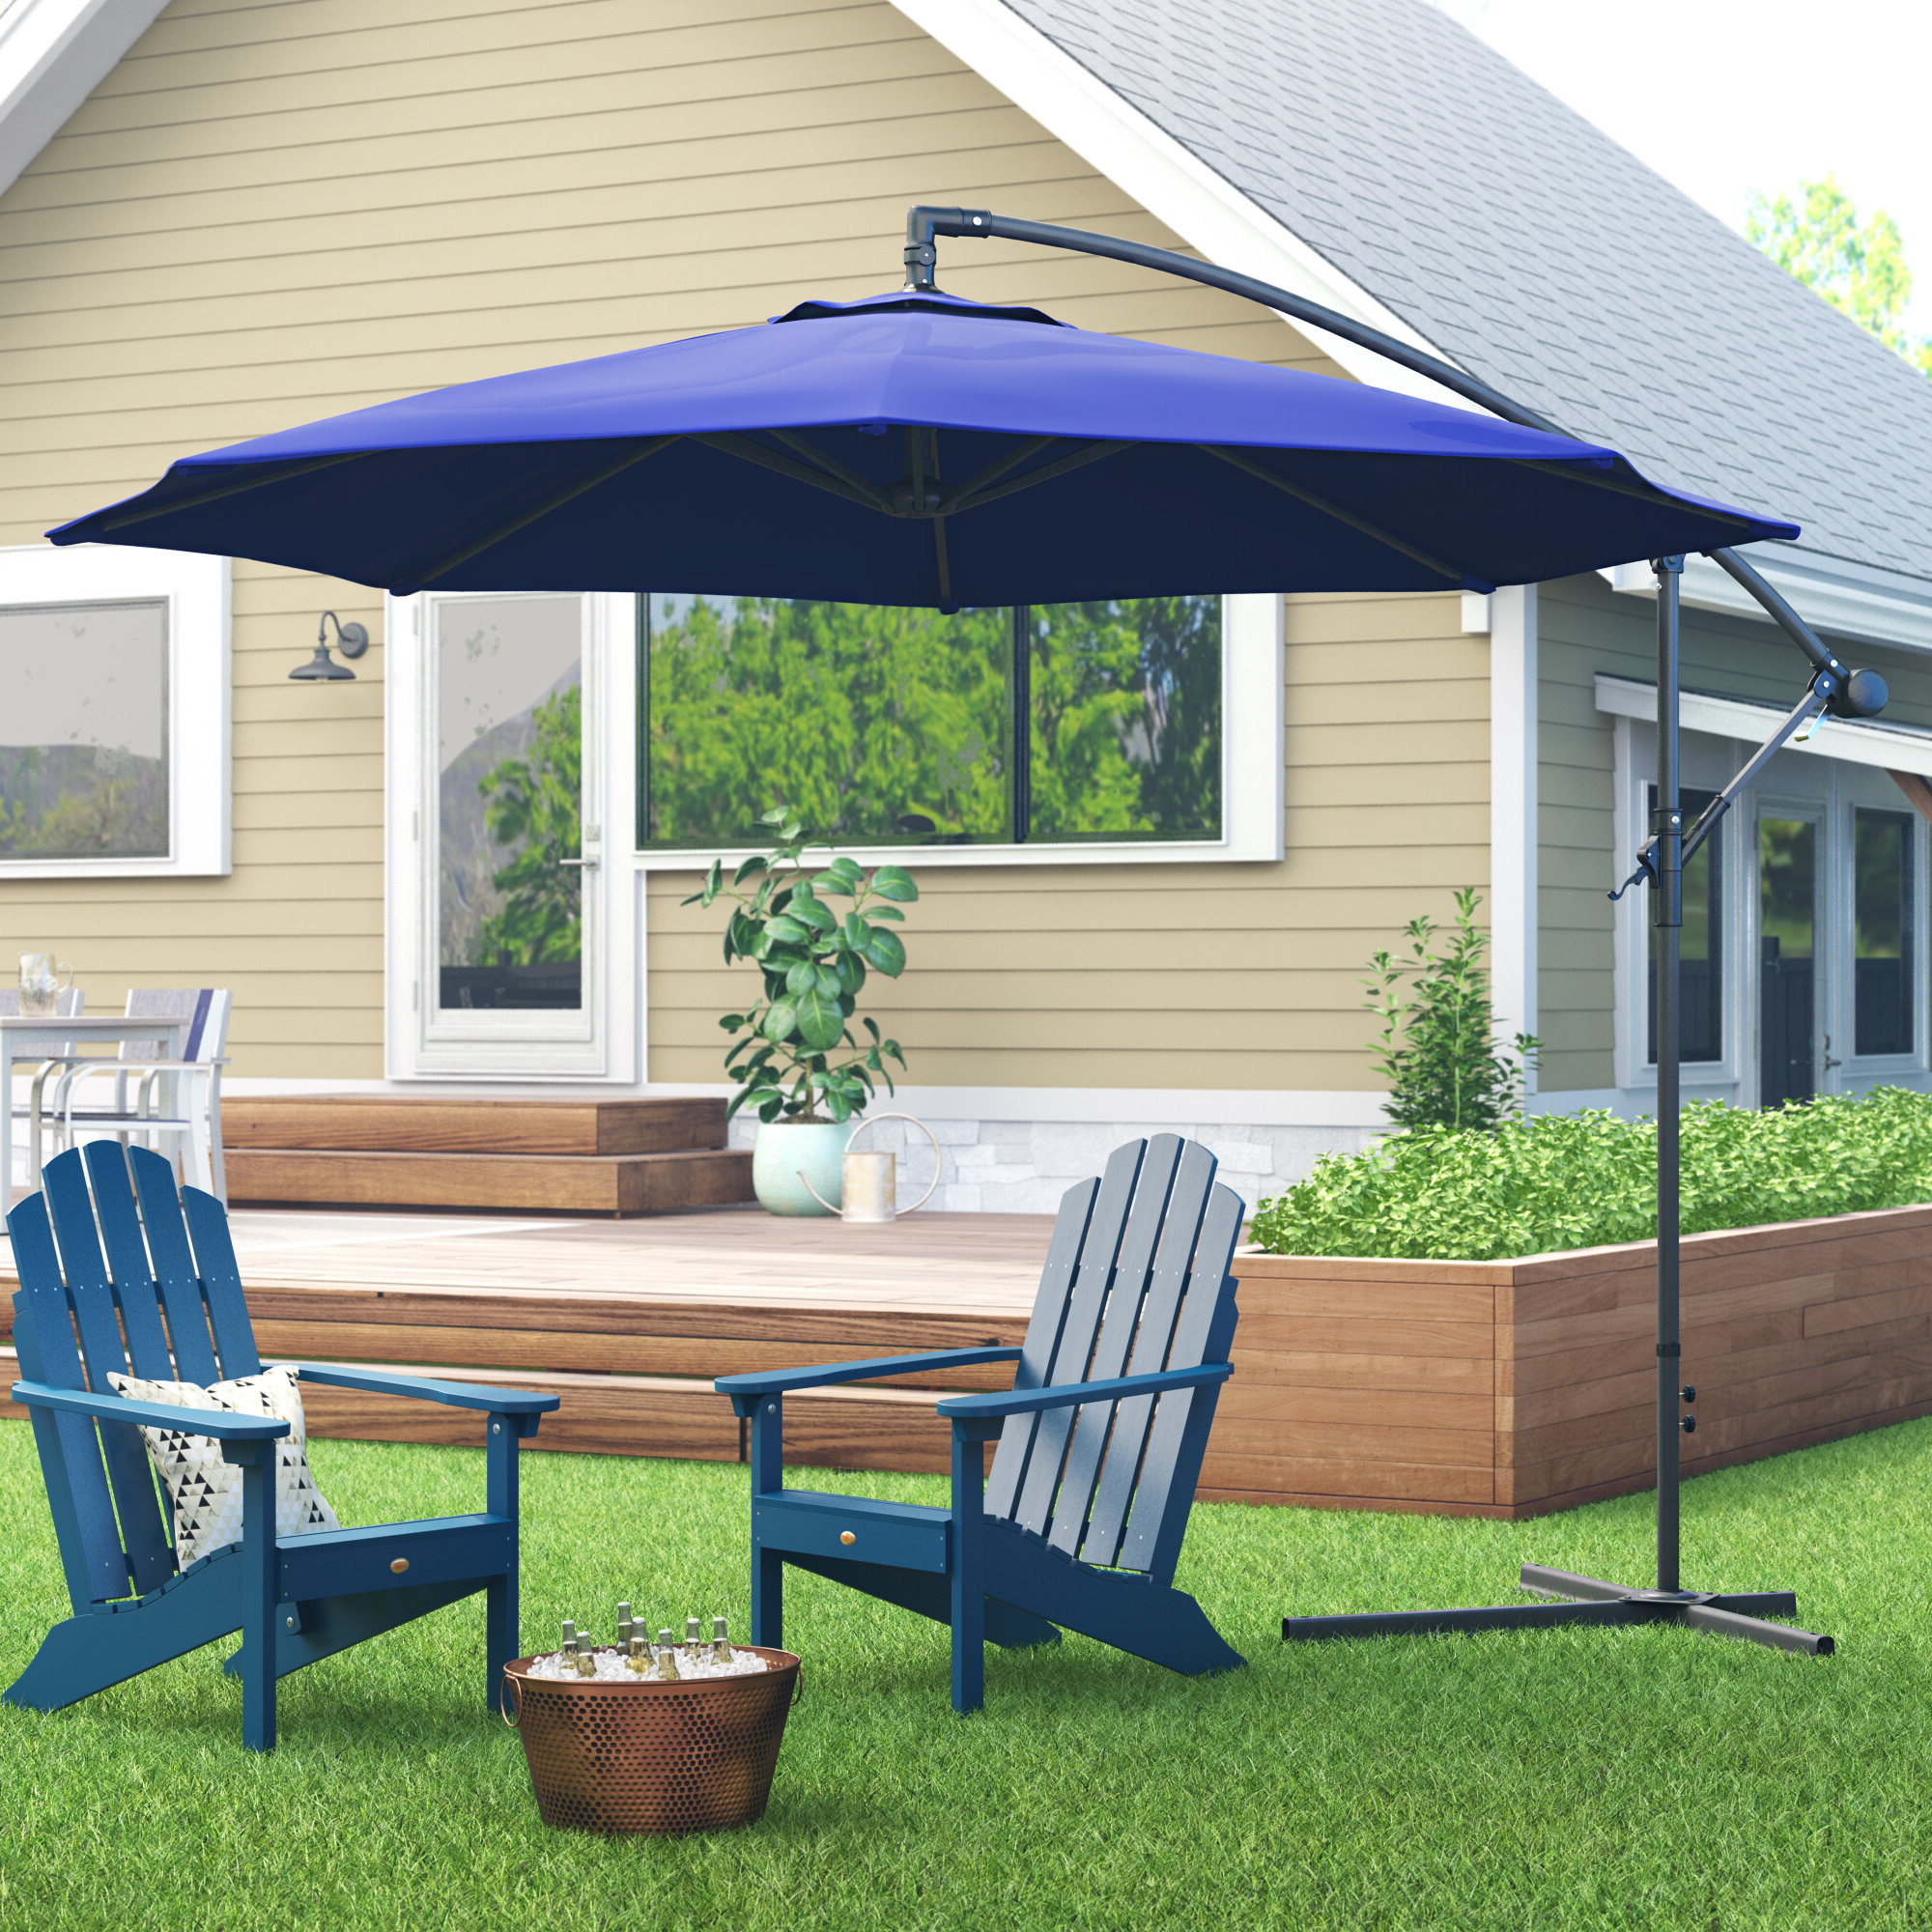 Trotman 10' Cantilever Umbrella Regarding Current Imogen Hanging Offset Cantilever Umbrellas (View 17 of 20)